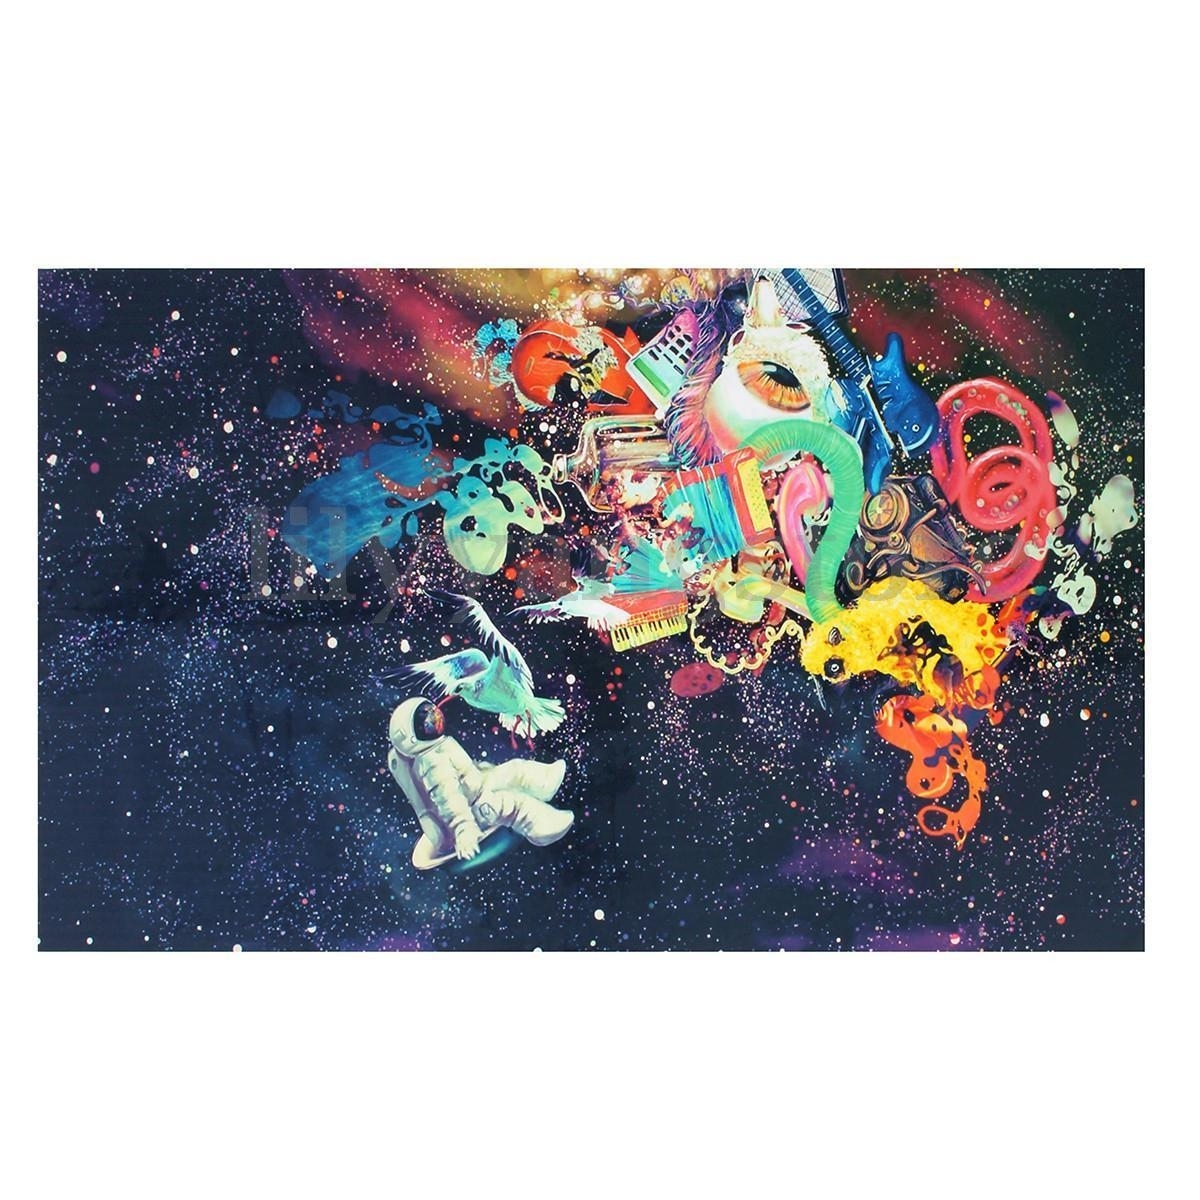 Psychedelic Trippy Art Silk Fabric Poster Modern Space Wall Decor Regarding Most Recent Silk Fabric Wall Art (View 12 of 15)